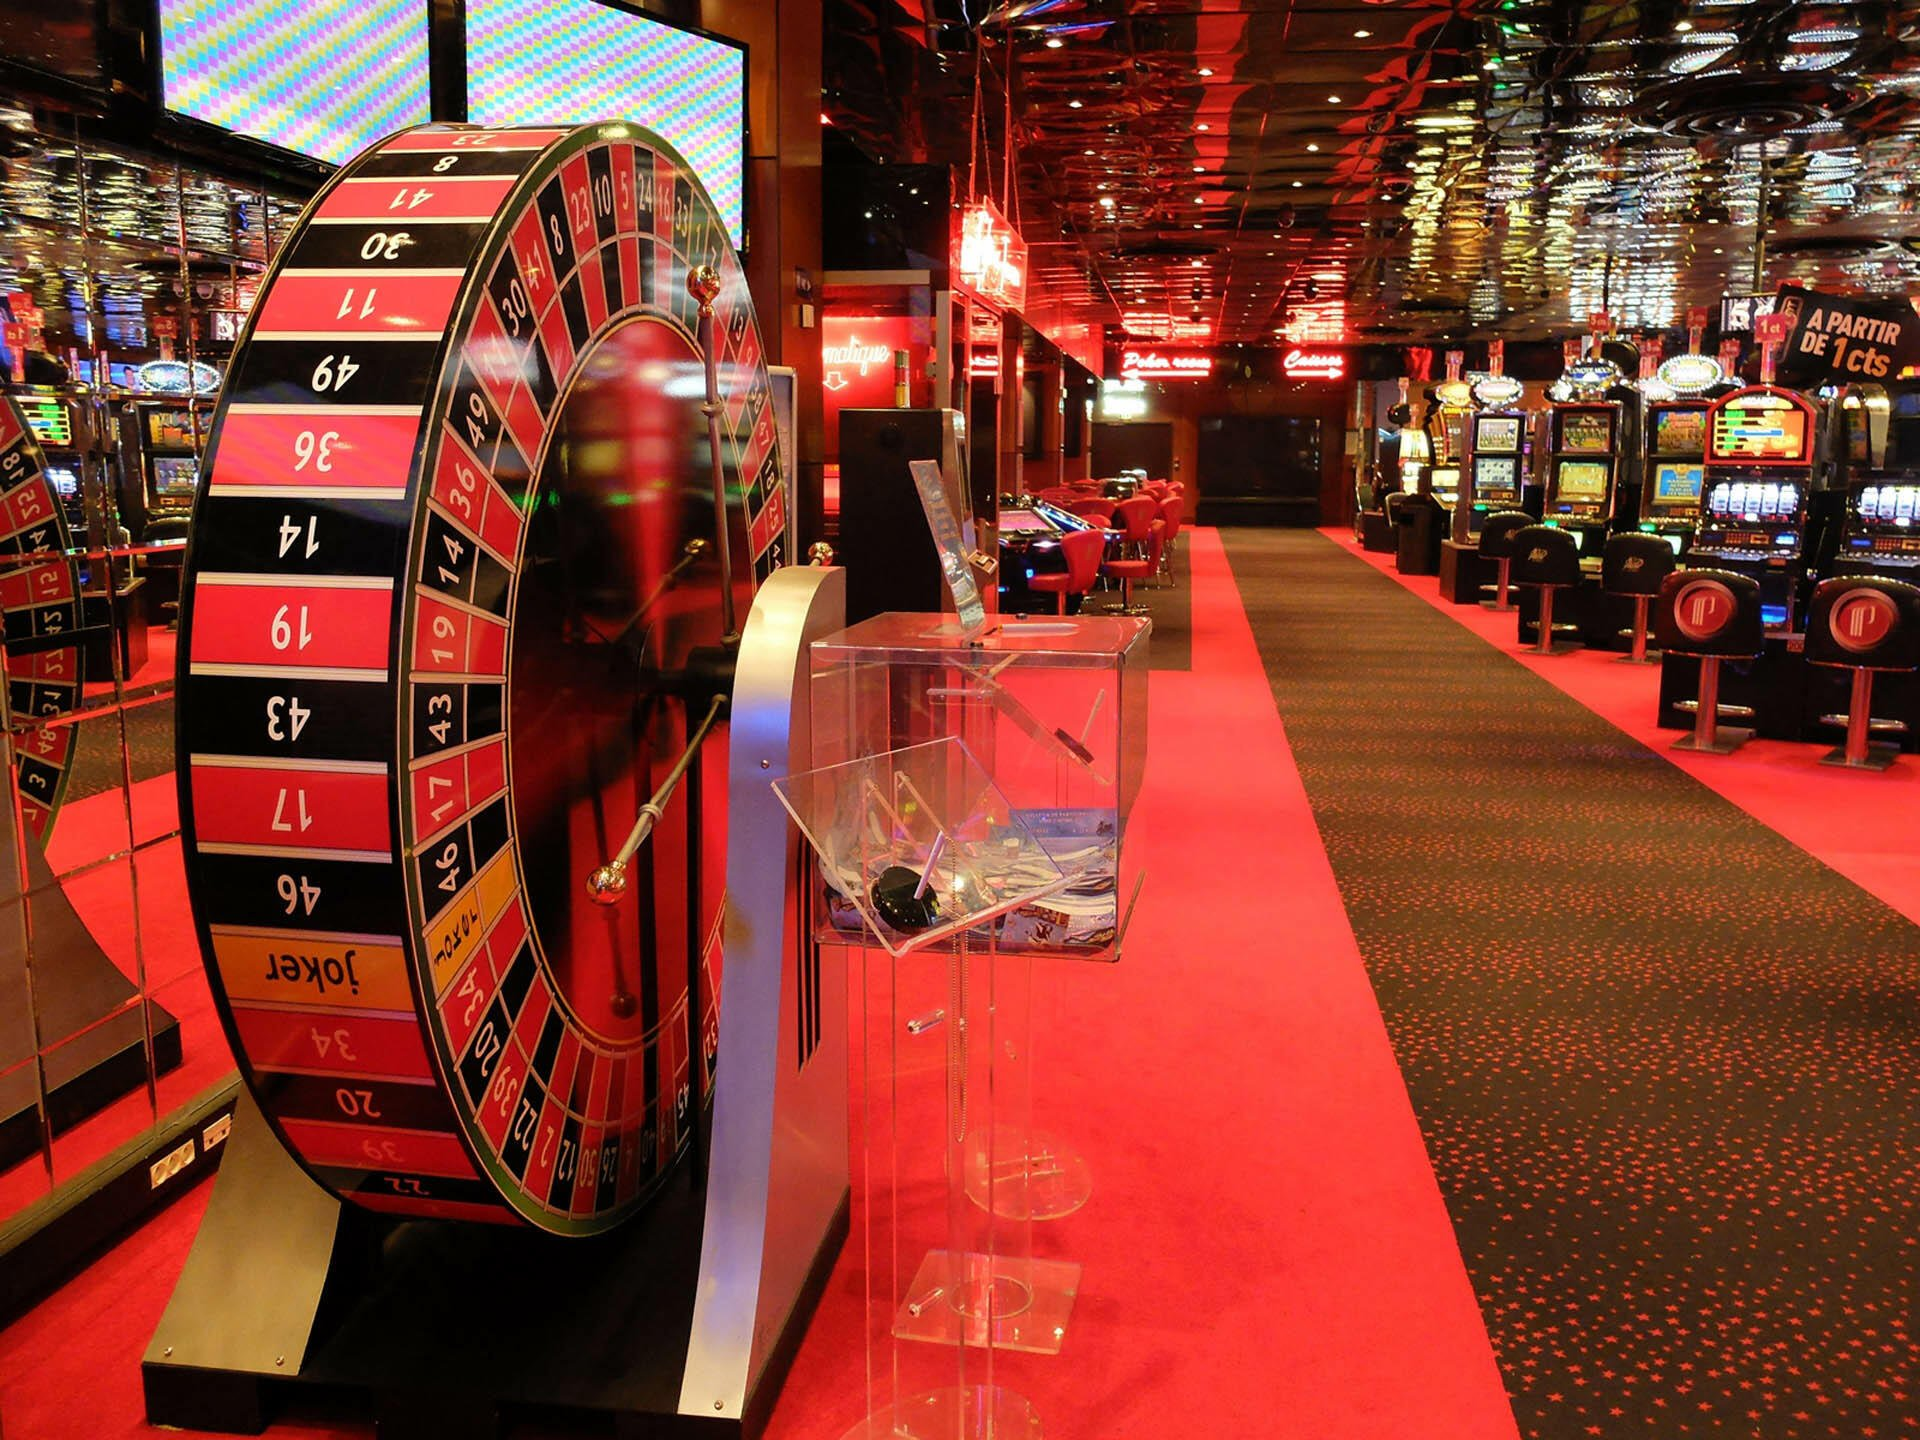 Casino at Partouche Hotels in France